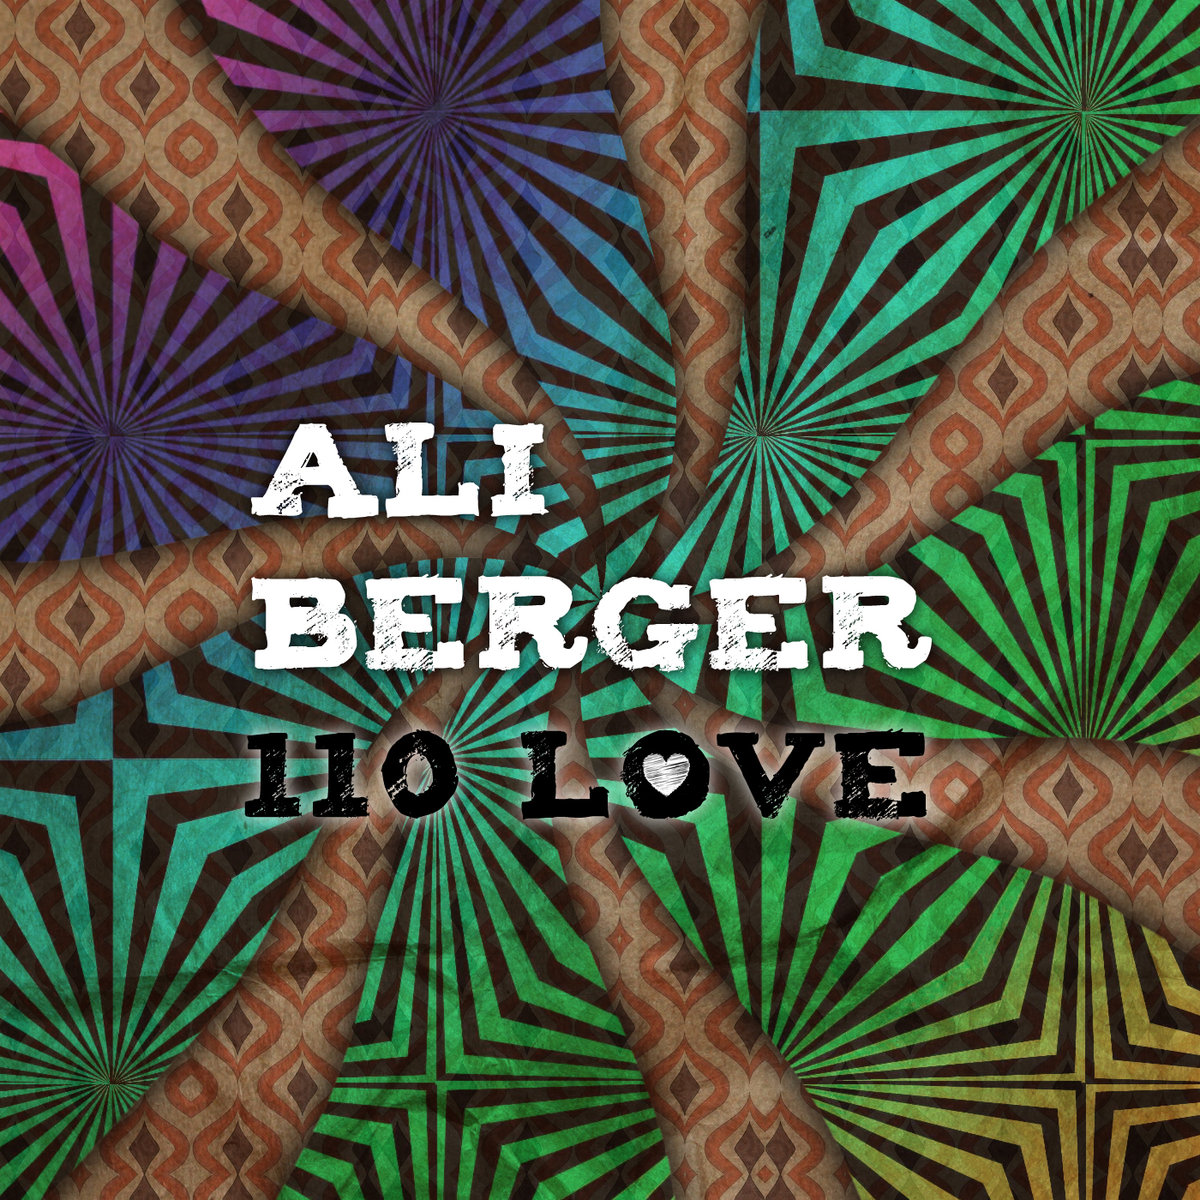 Ali Berger - Freeze-Dried Cellophane @ '110 Love' album (bass, electronic)